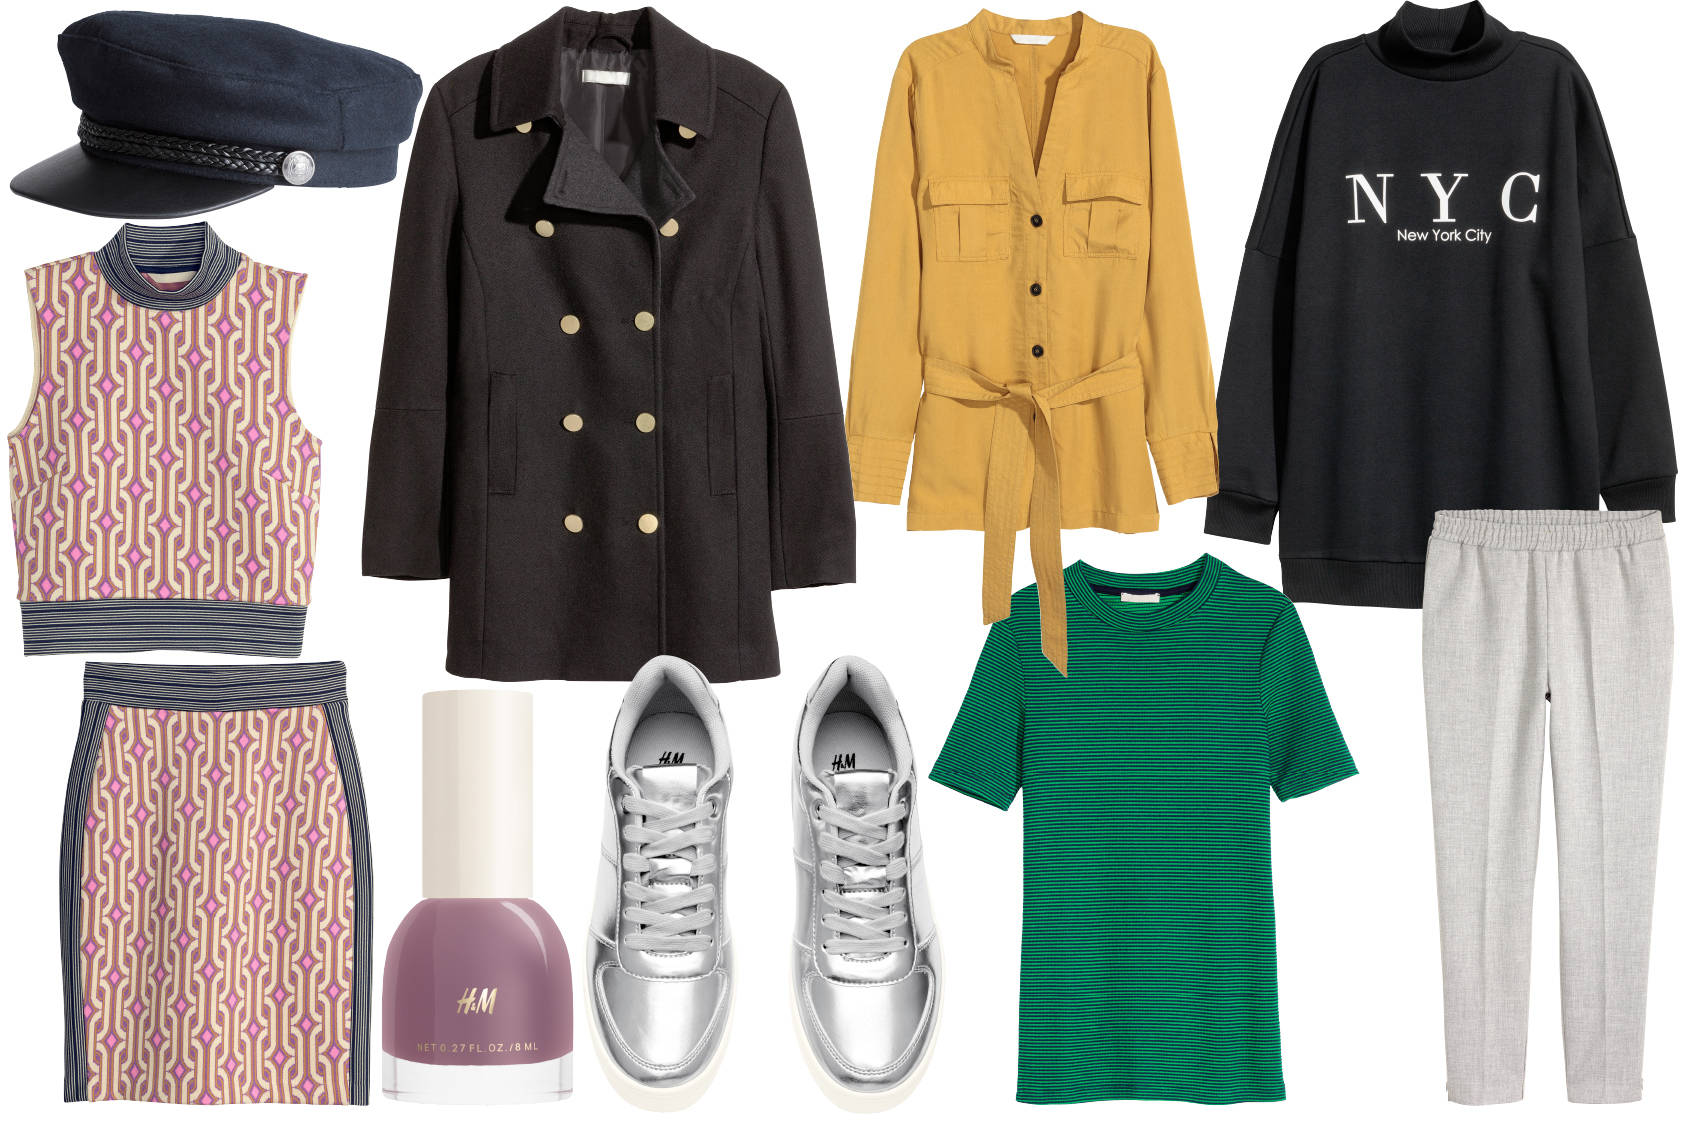 THIS WEEK'S FASHION FINDS, WEEK 2.